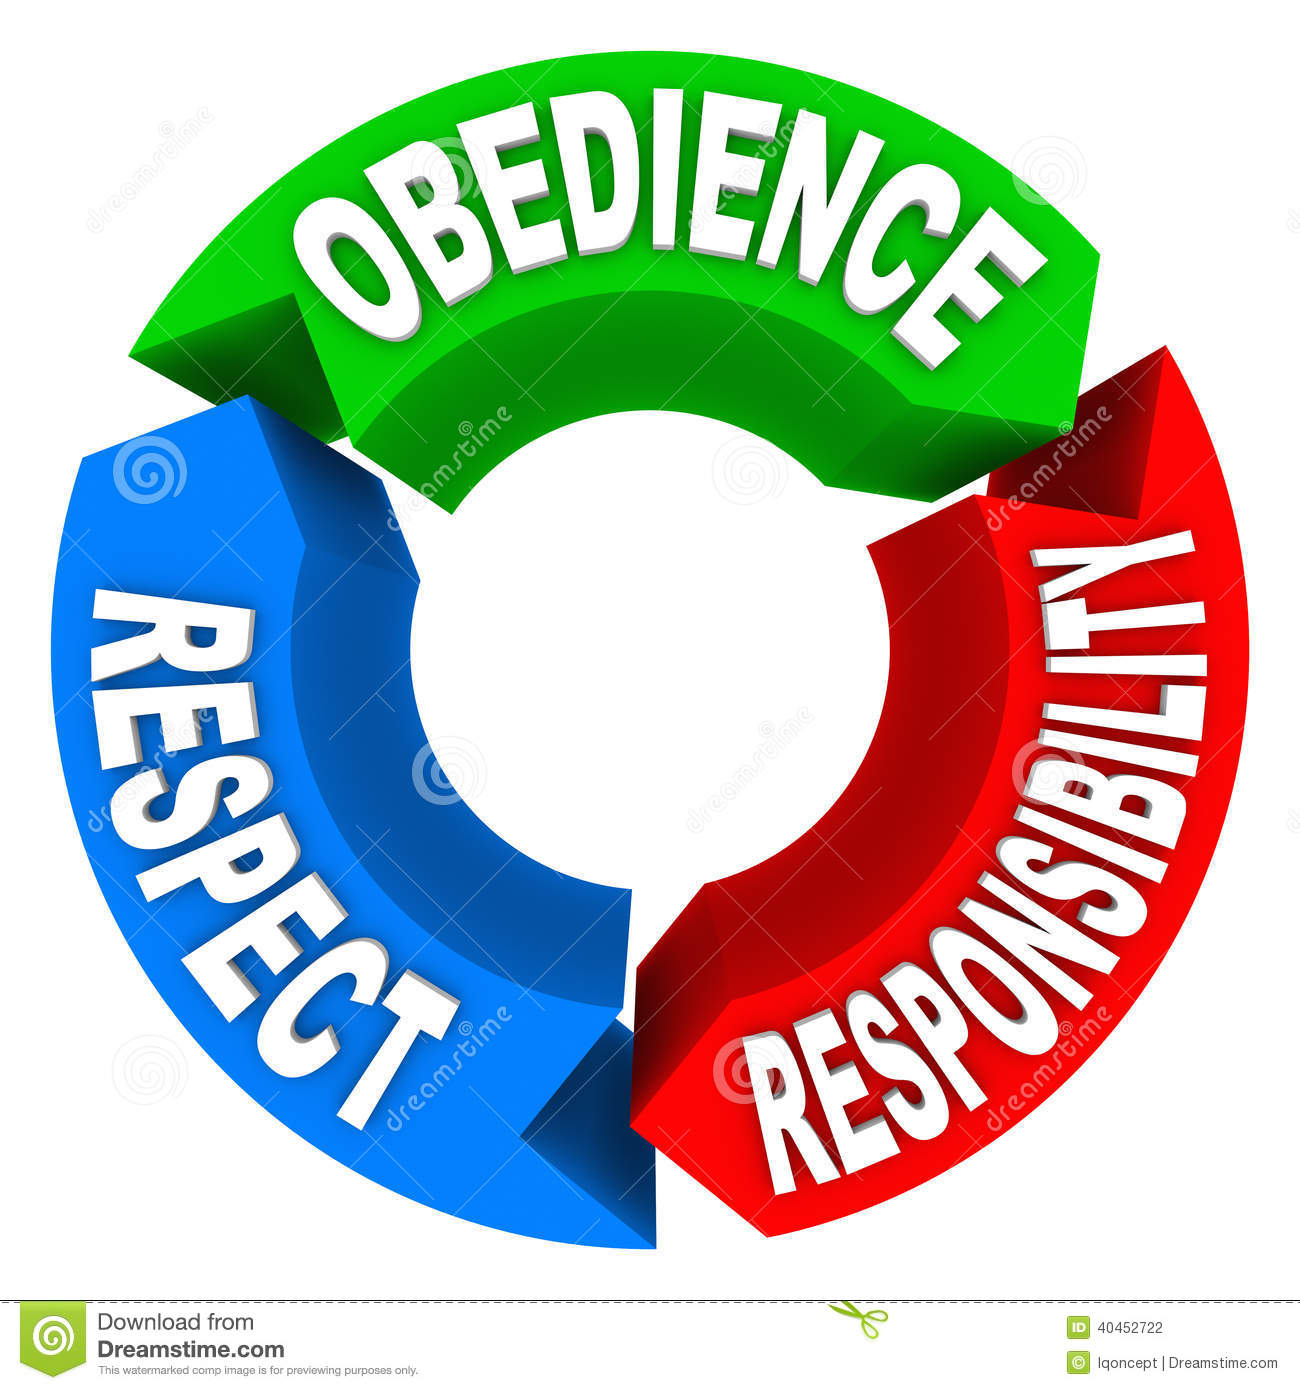 an obedient child essay Discipline and obedience from the montessori perspective 11 so it is impossible to expect a child to be obedient with out having haven't found the essay.